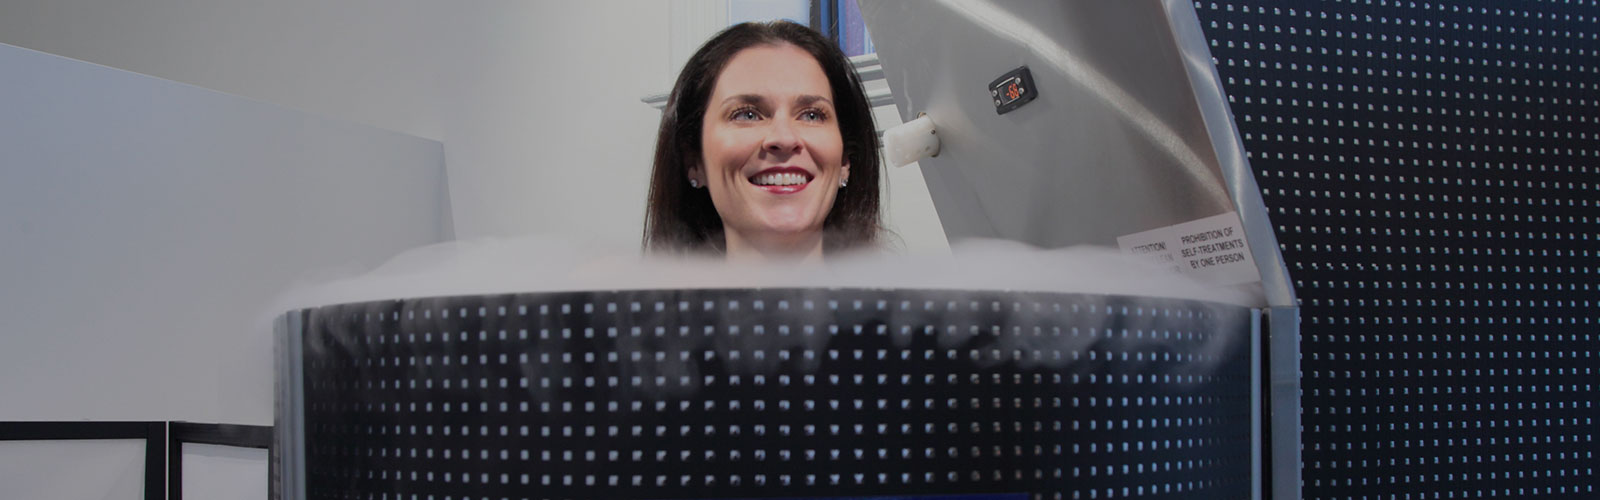 cryotherapy treatment